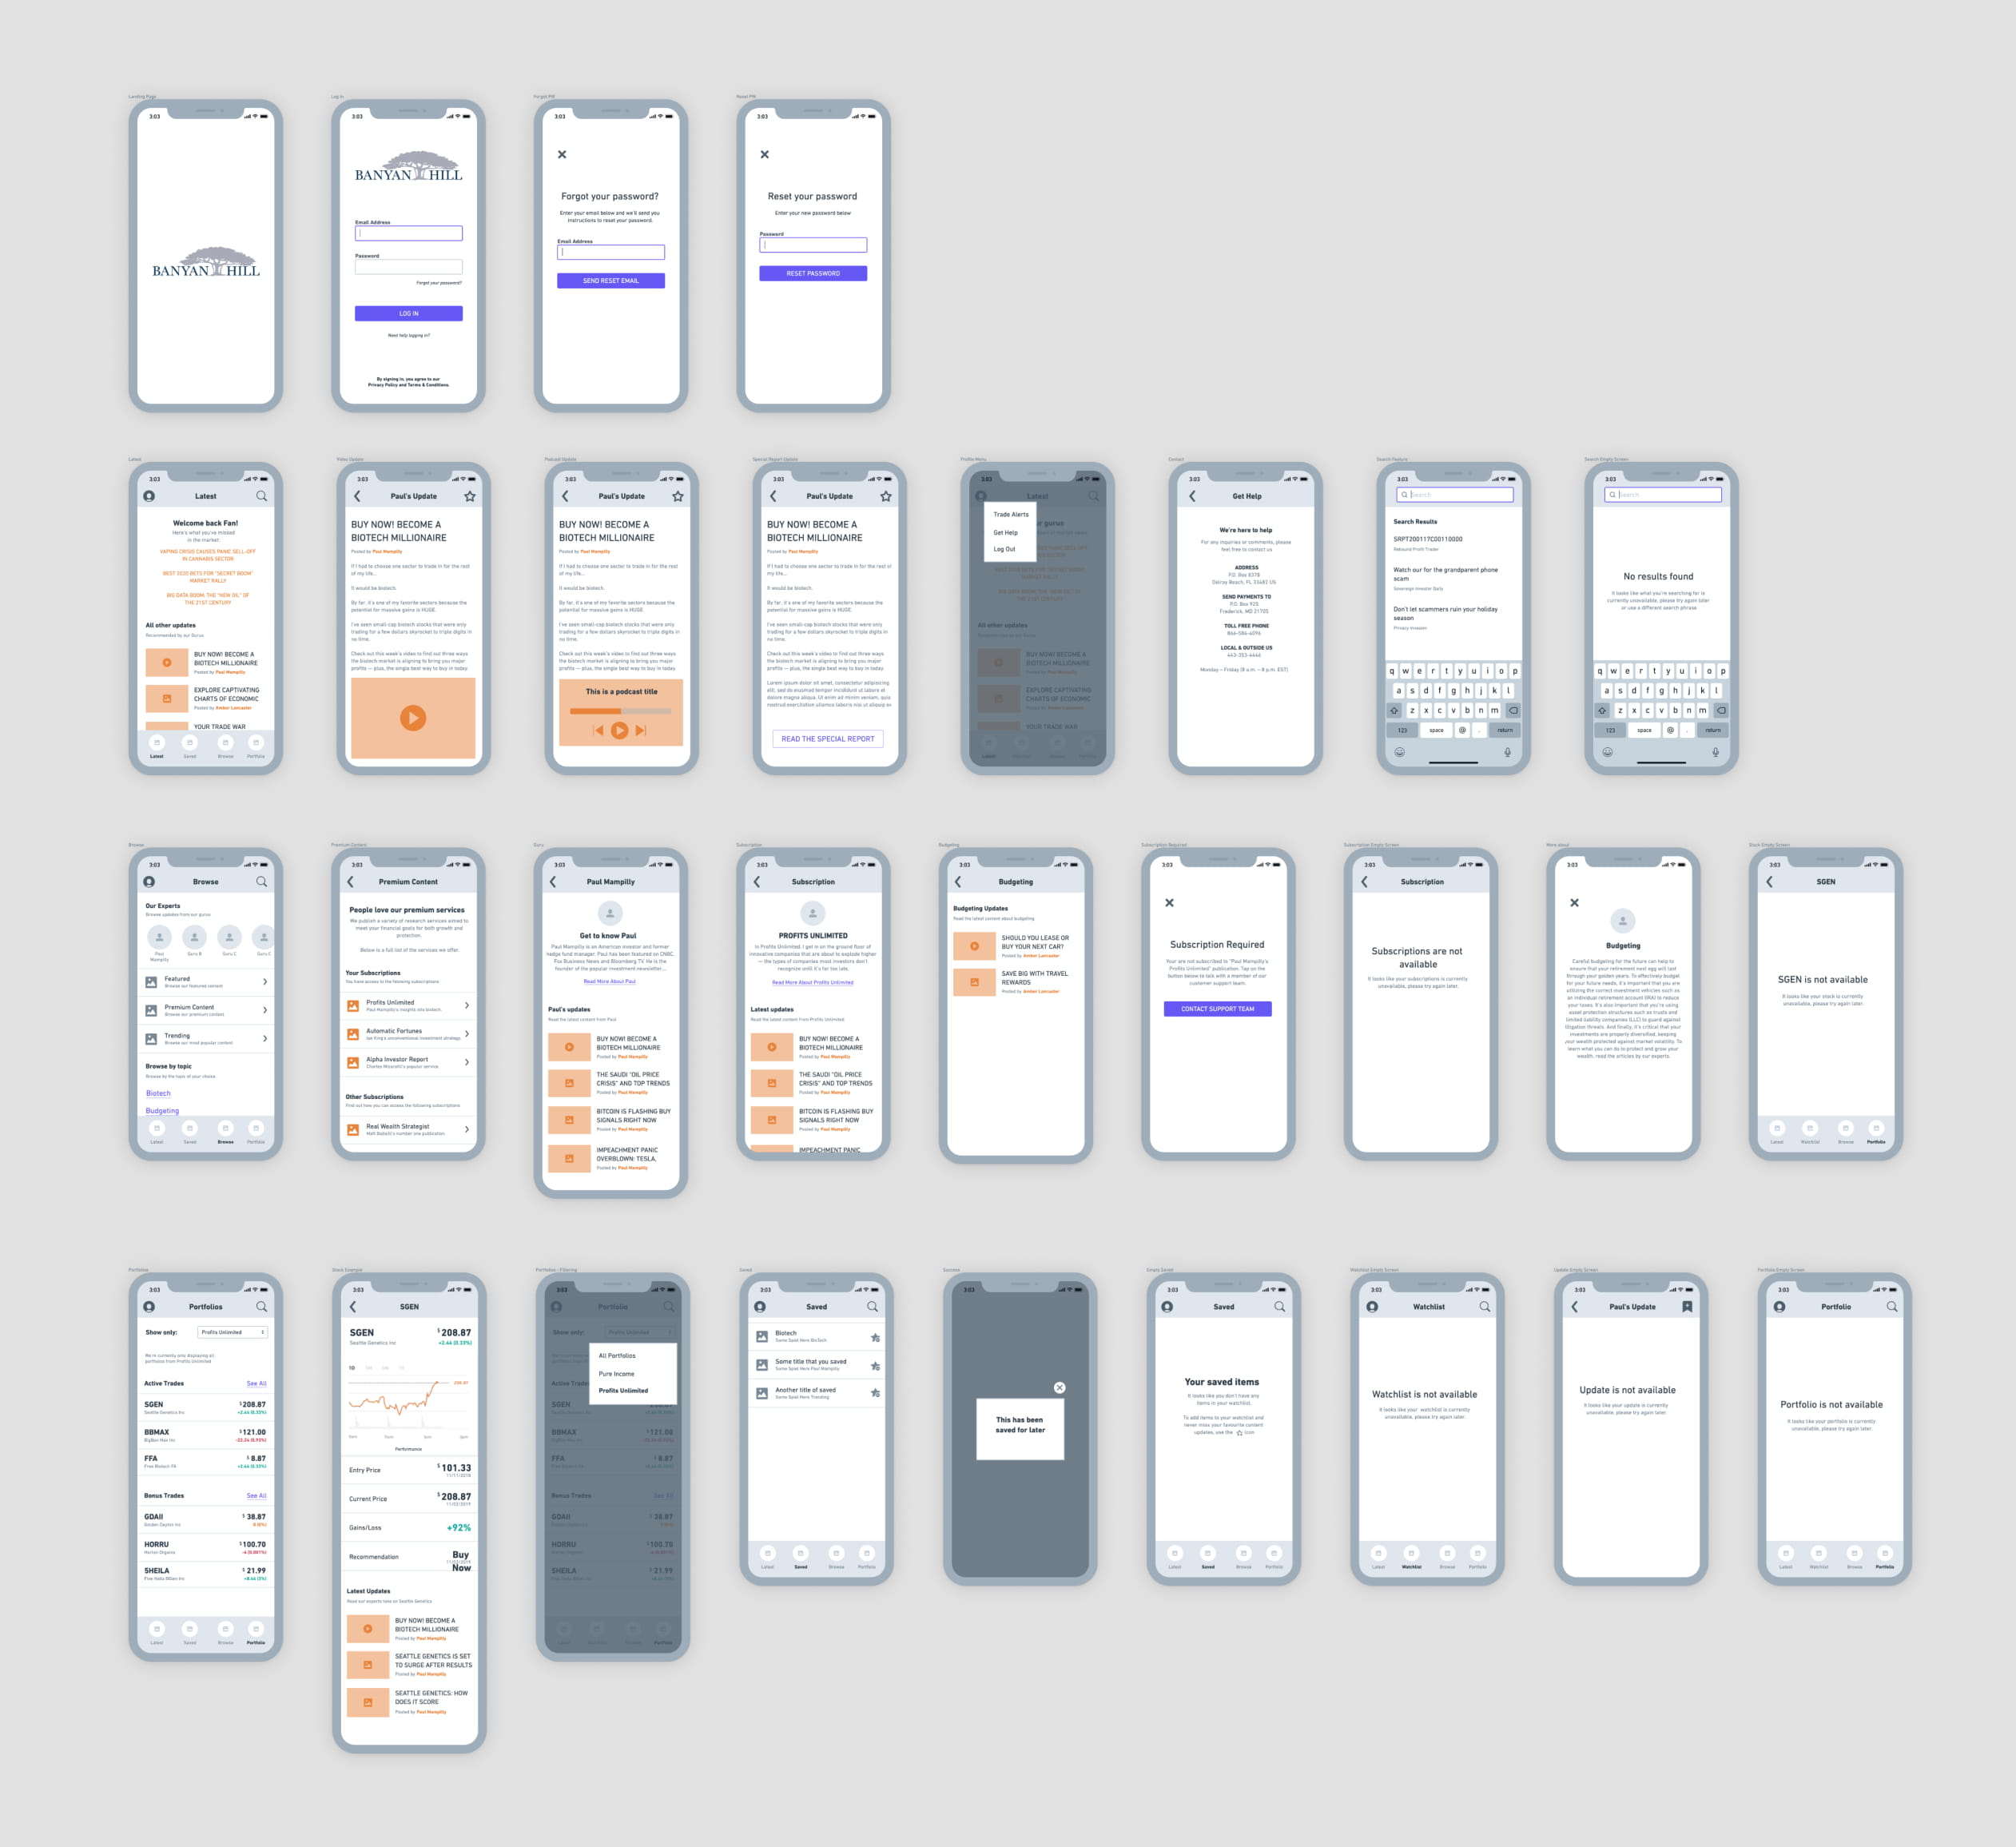 LoFi wireframes of the Banyan Hill app.